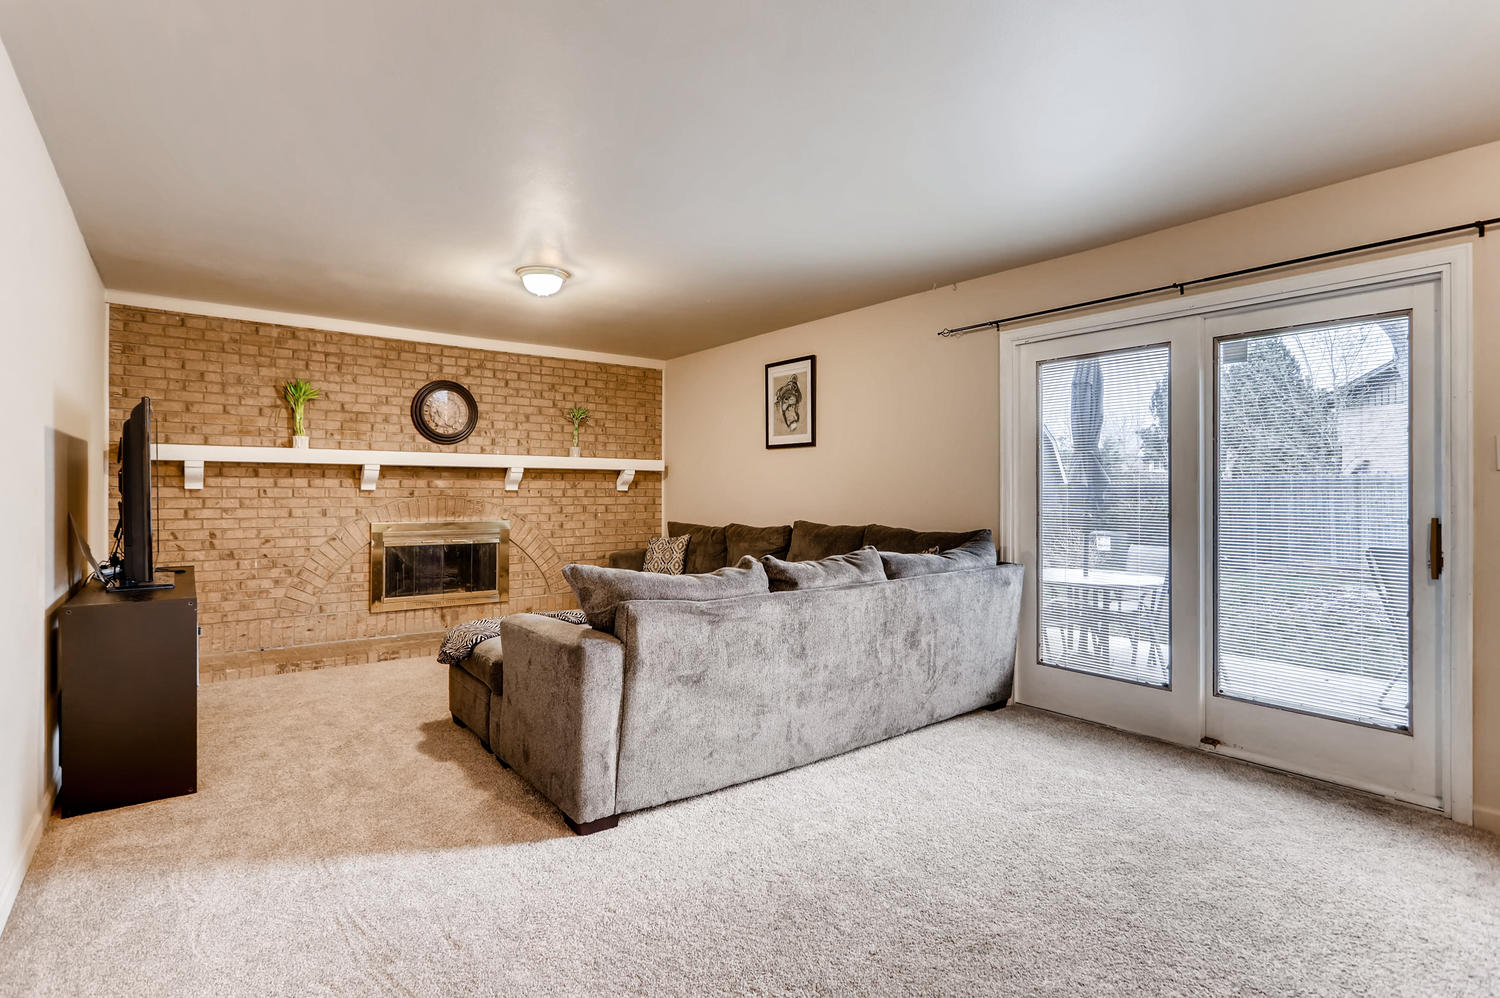 16971 E Bates Ave Aurora CO-large-019-19-Lower Level Family Room-1500x998-72dpi.jpg